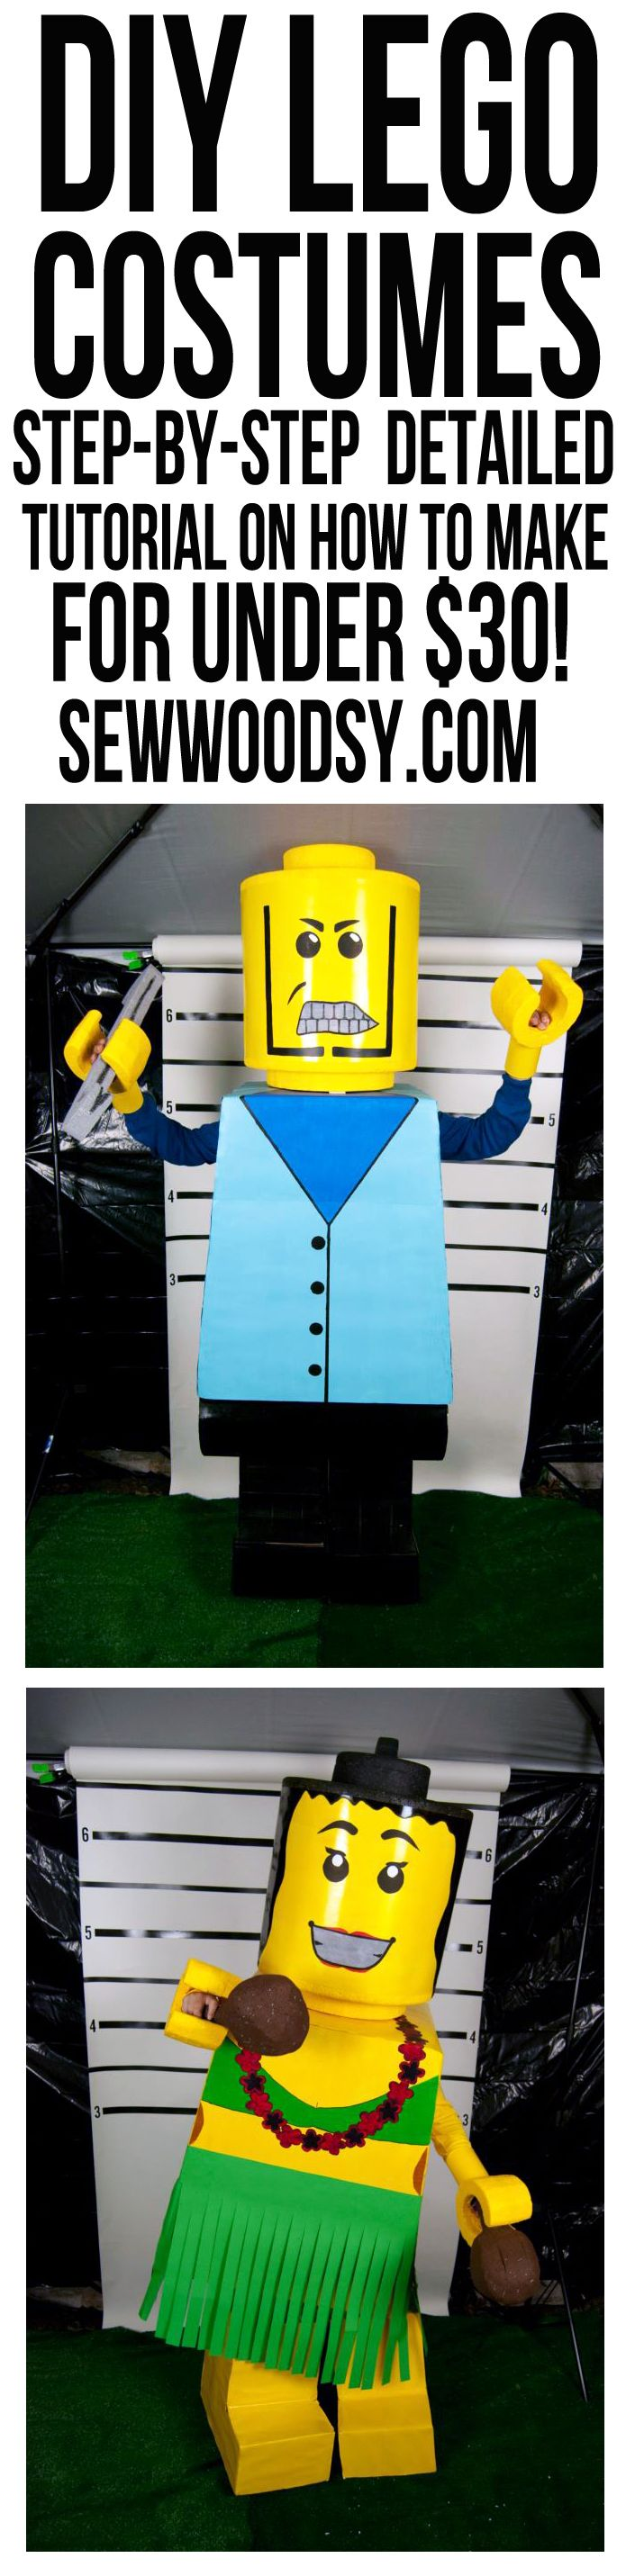 Costume Ideas | Make your own Lego costumes for Halloween! Click here for step-by-step instructions on this affordable DIY.